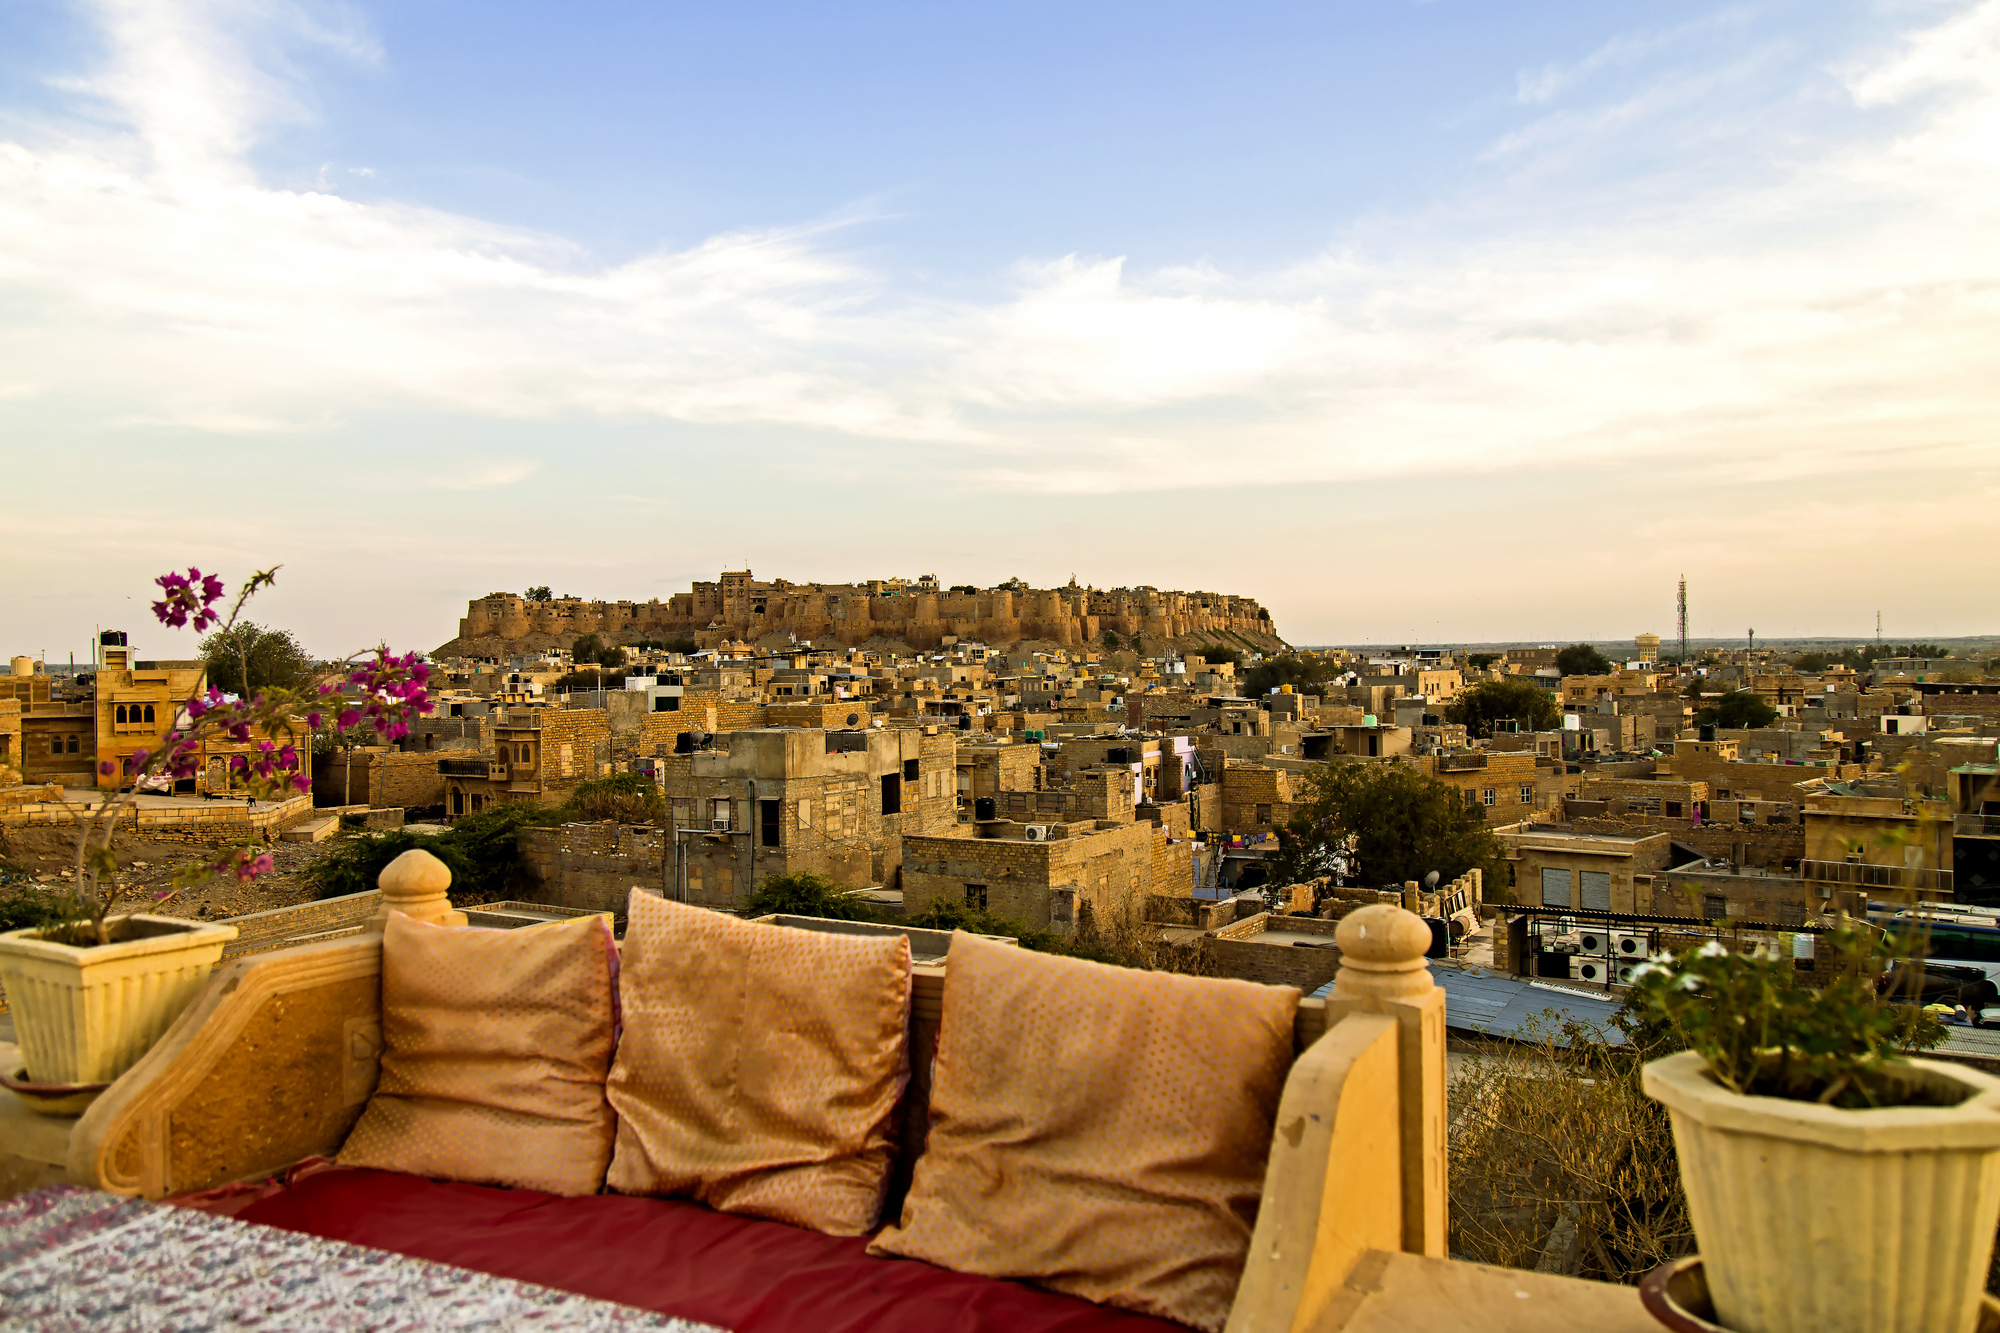 The Golden Fort at Jaisalmer, Rajasthan